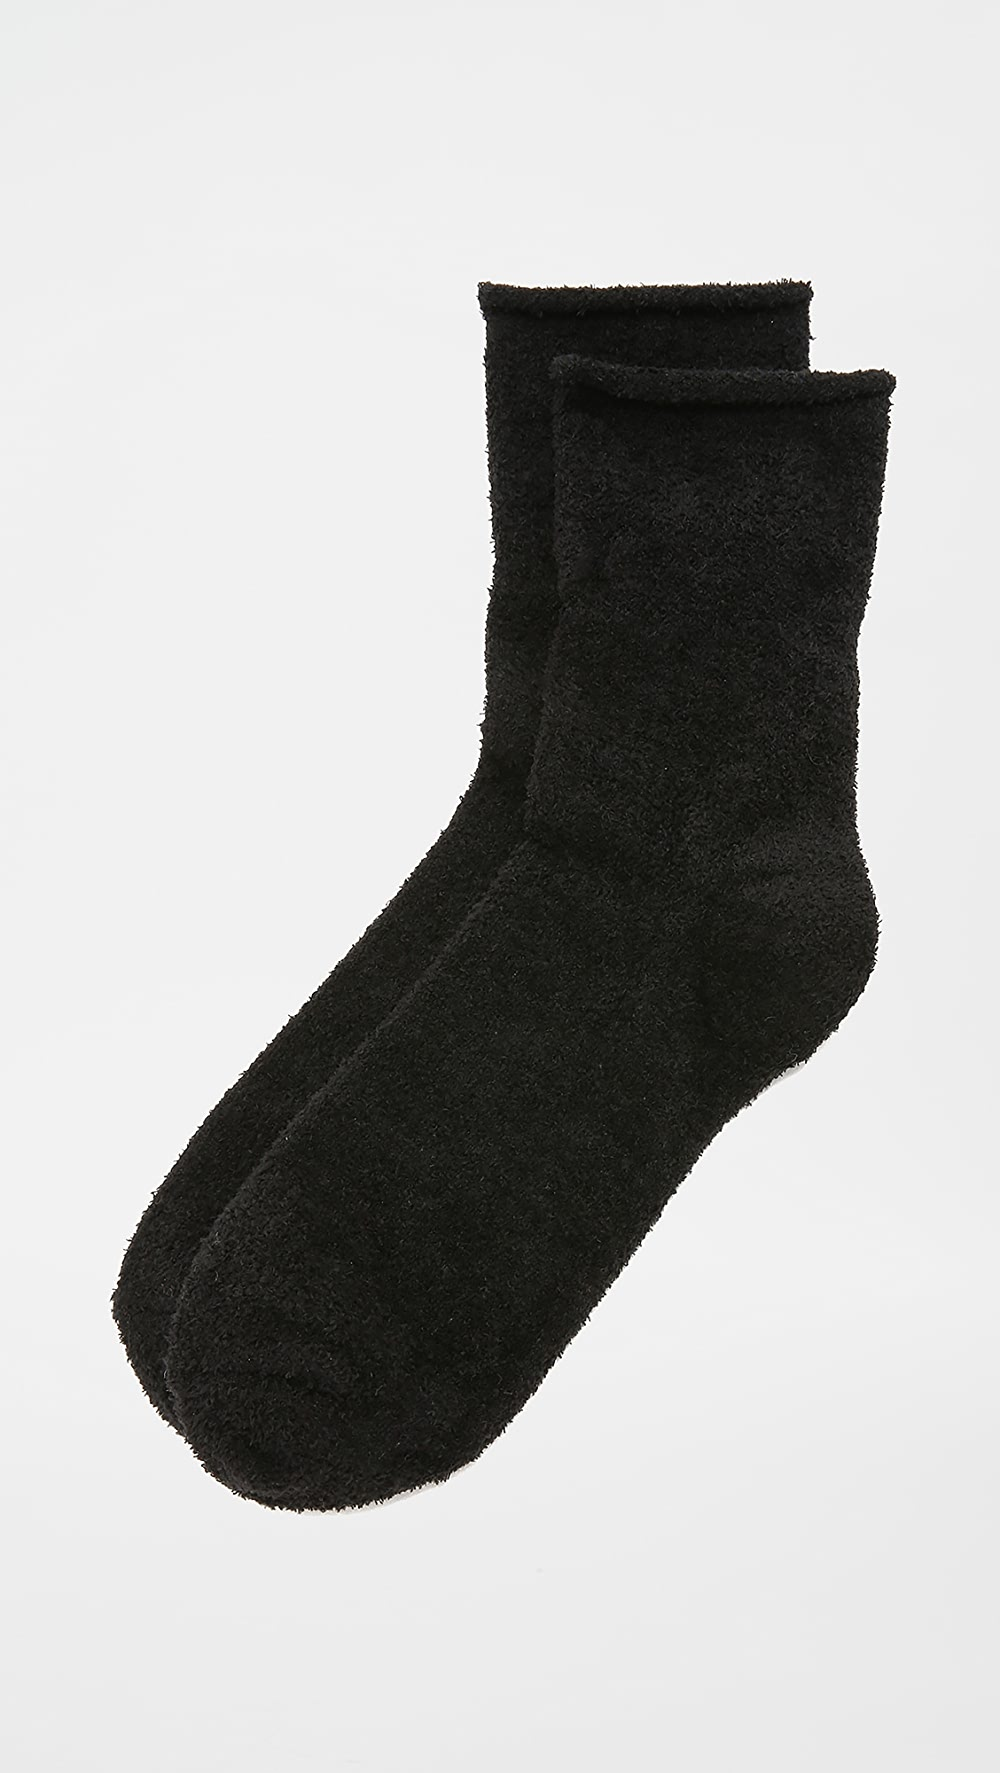 Amicable Plush - Rolled Fleece Socks Supplement The Vital Energy And Nourish Yin